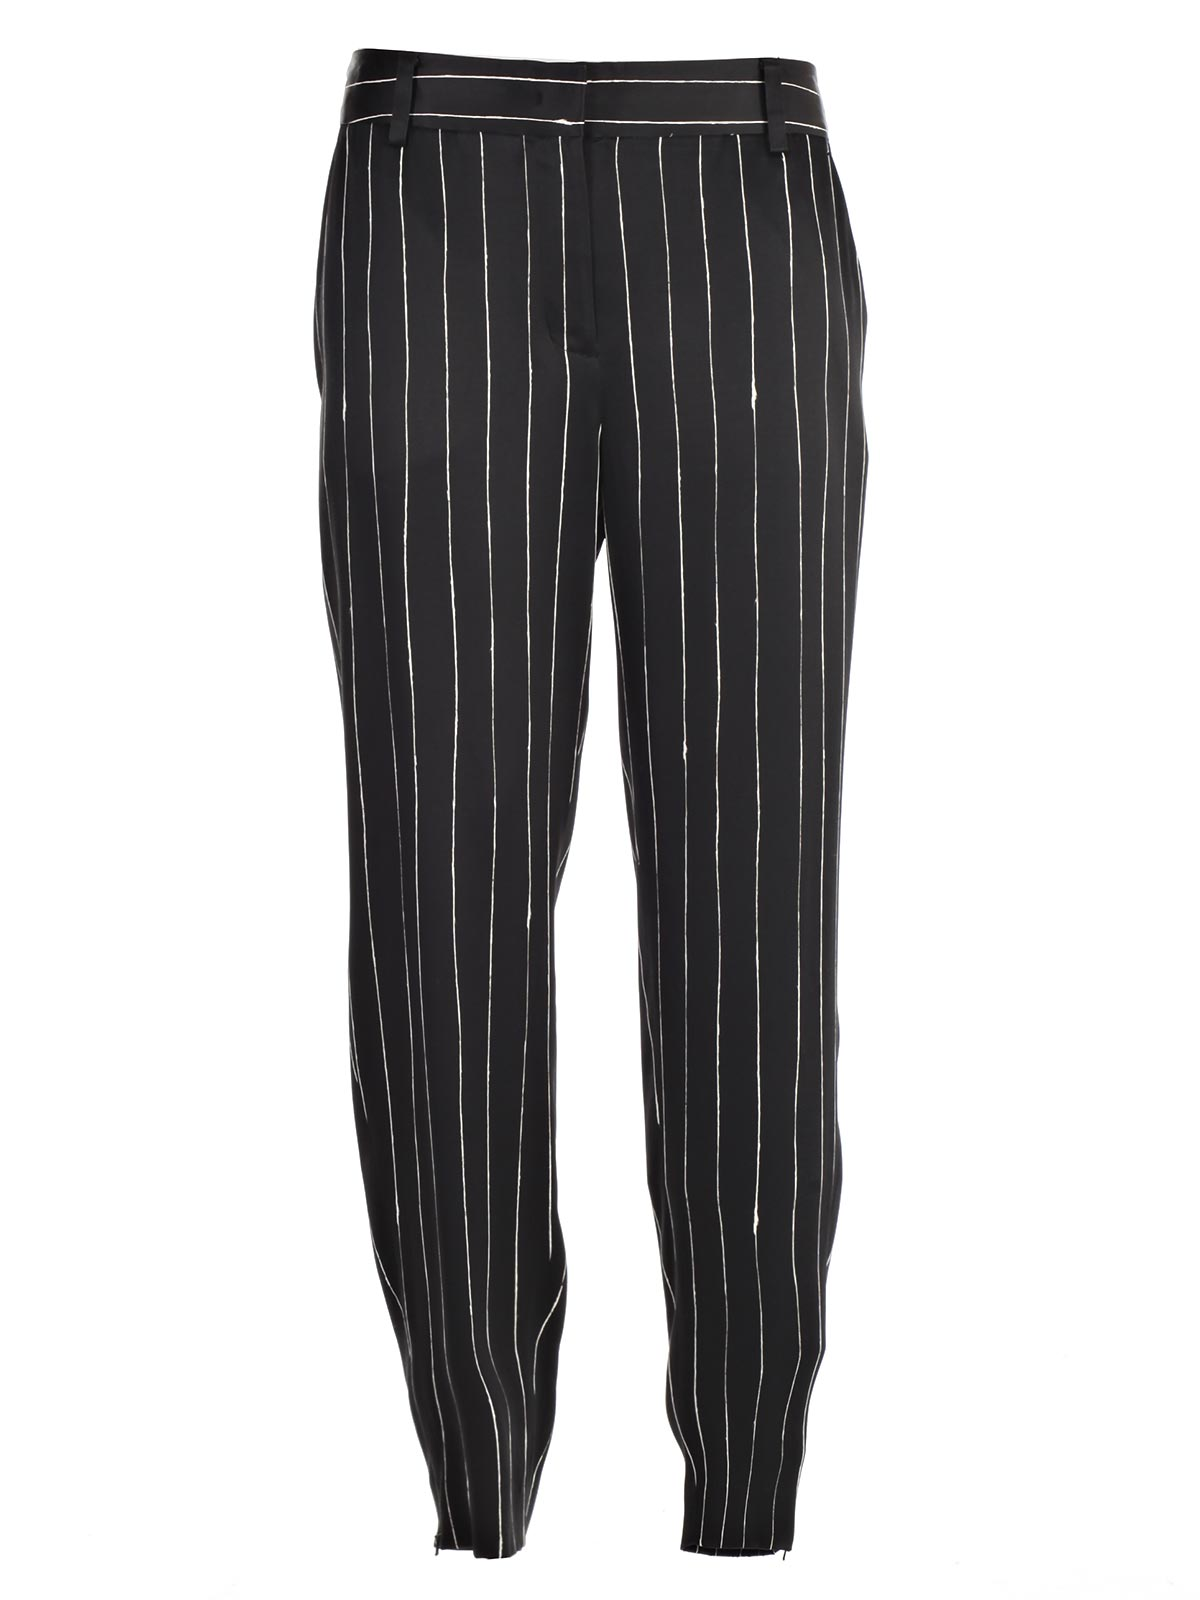 Picture of DKNY TROUSERS TAILORED RELAXED PANT